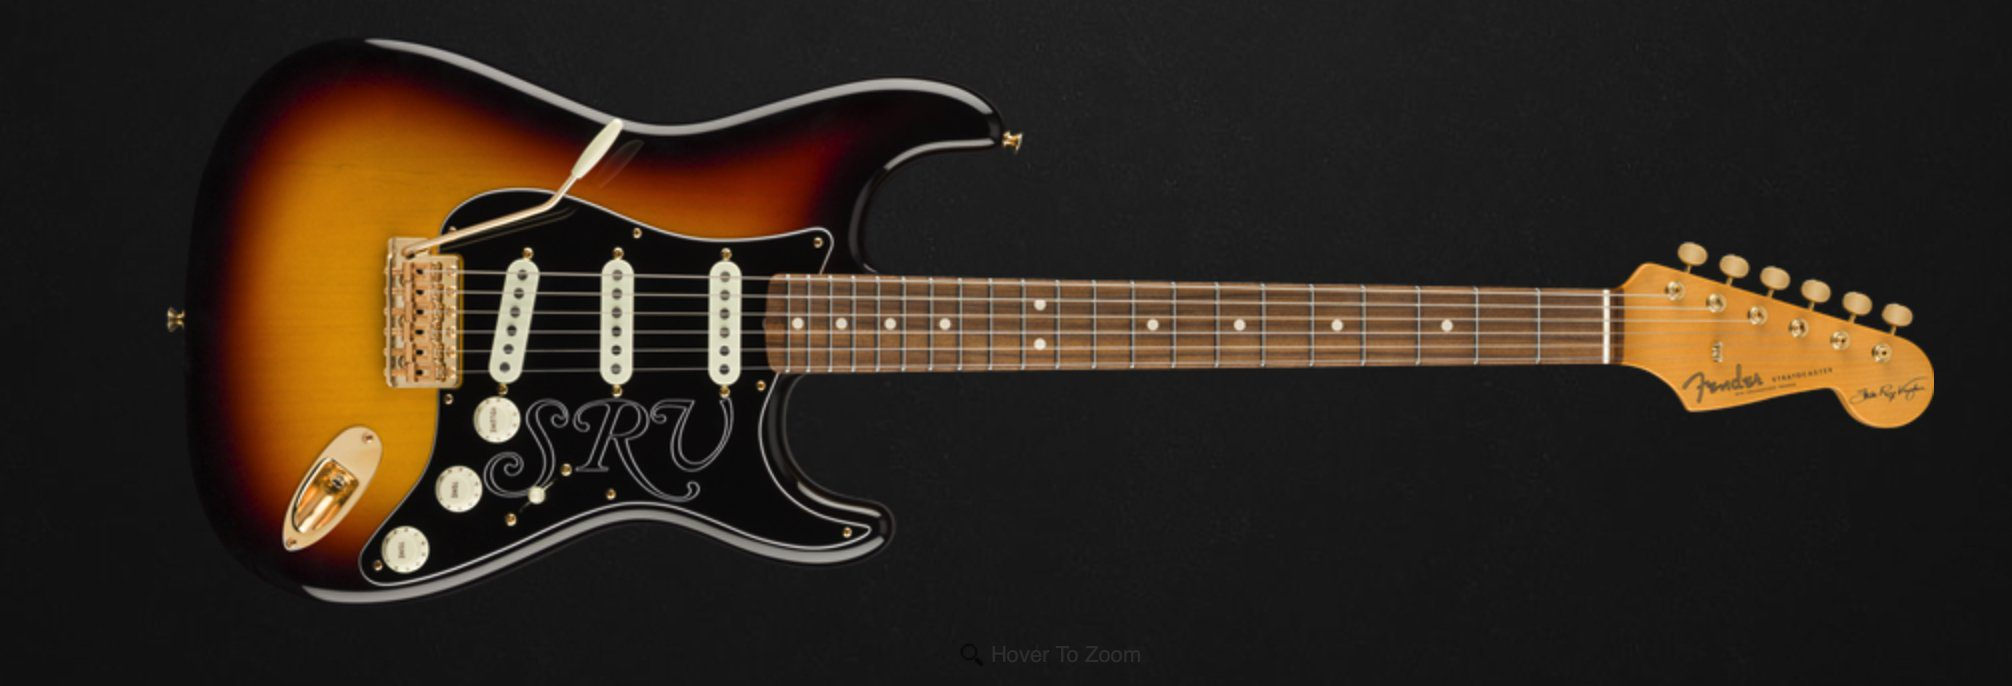 Fender-Custom-Shop-Stevie-Ray-Vaughan-Signature-Stratocaster-2019